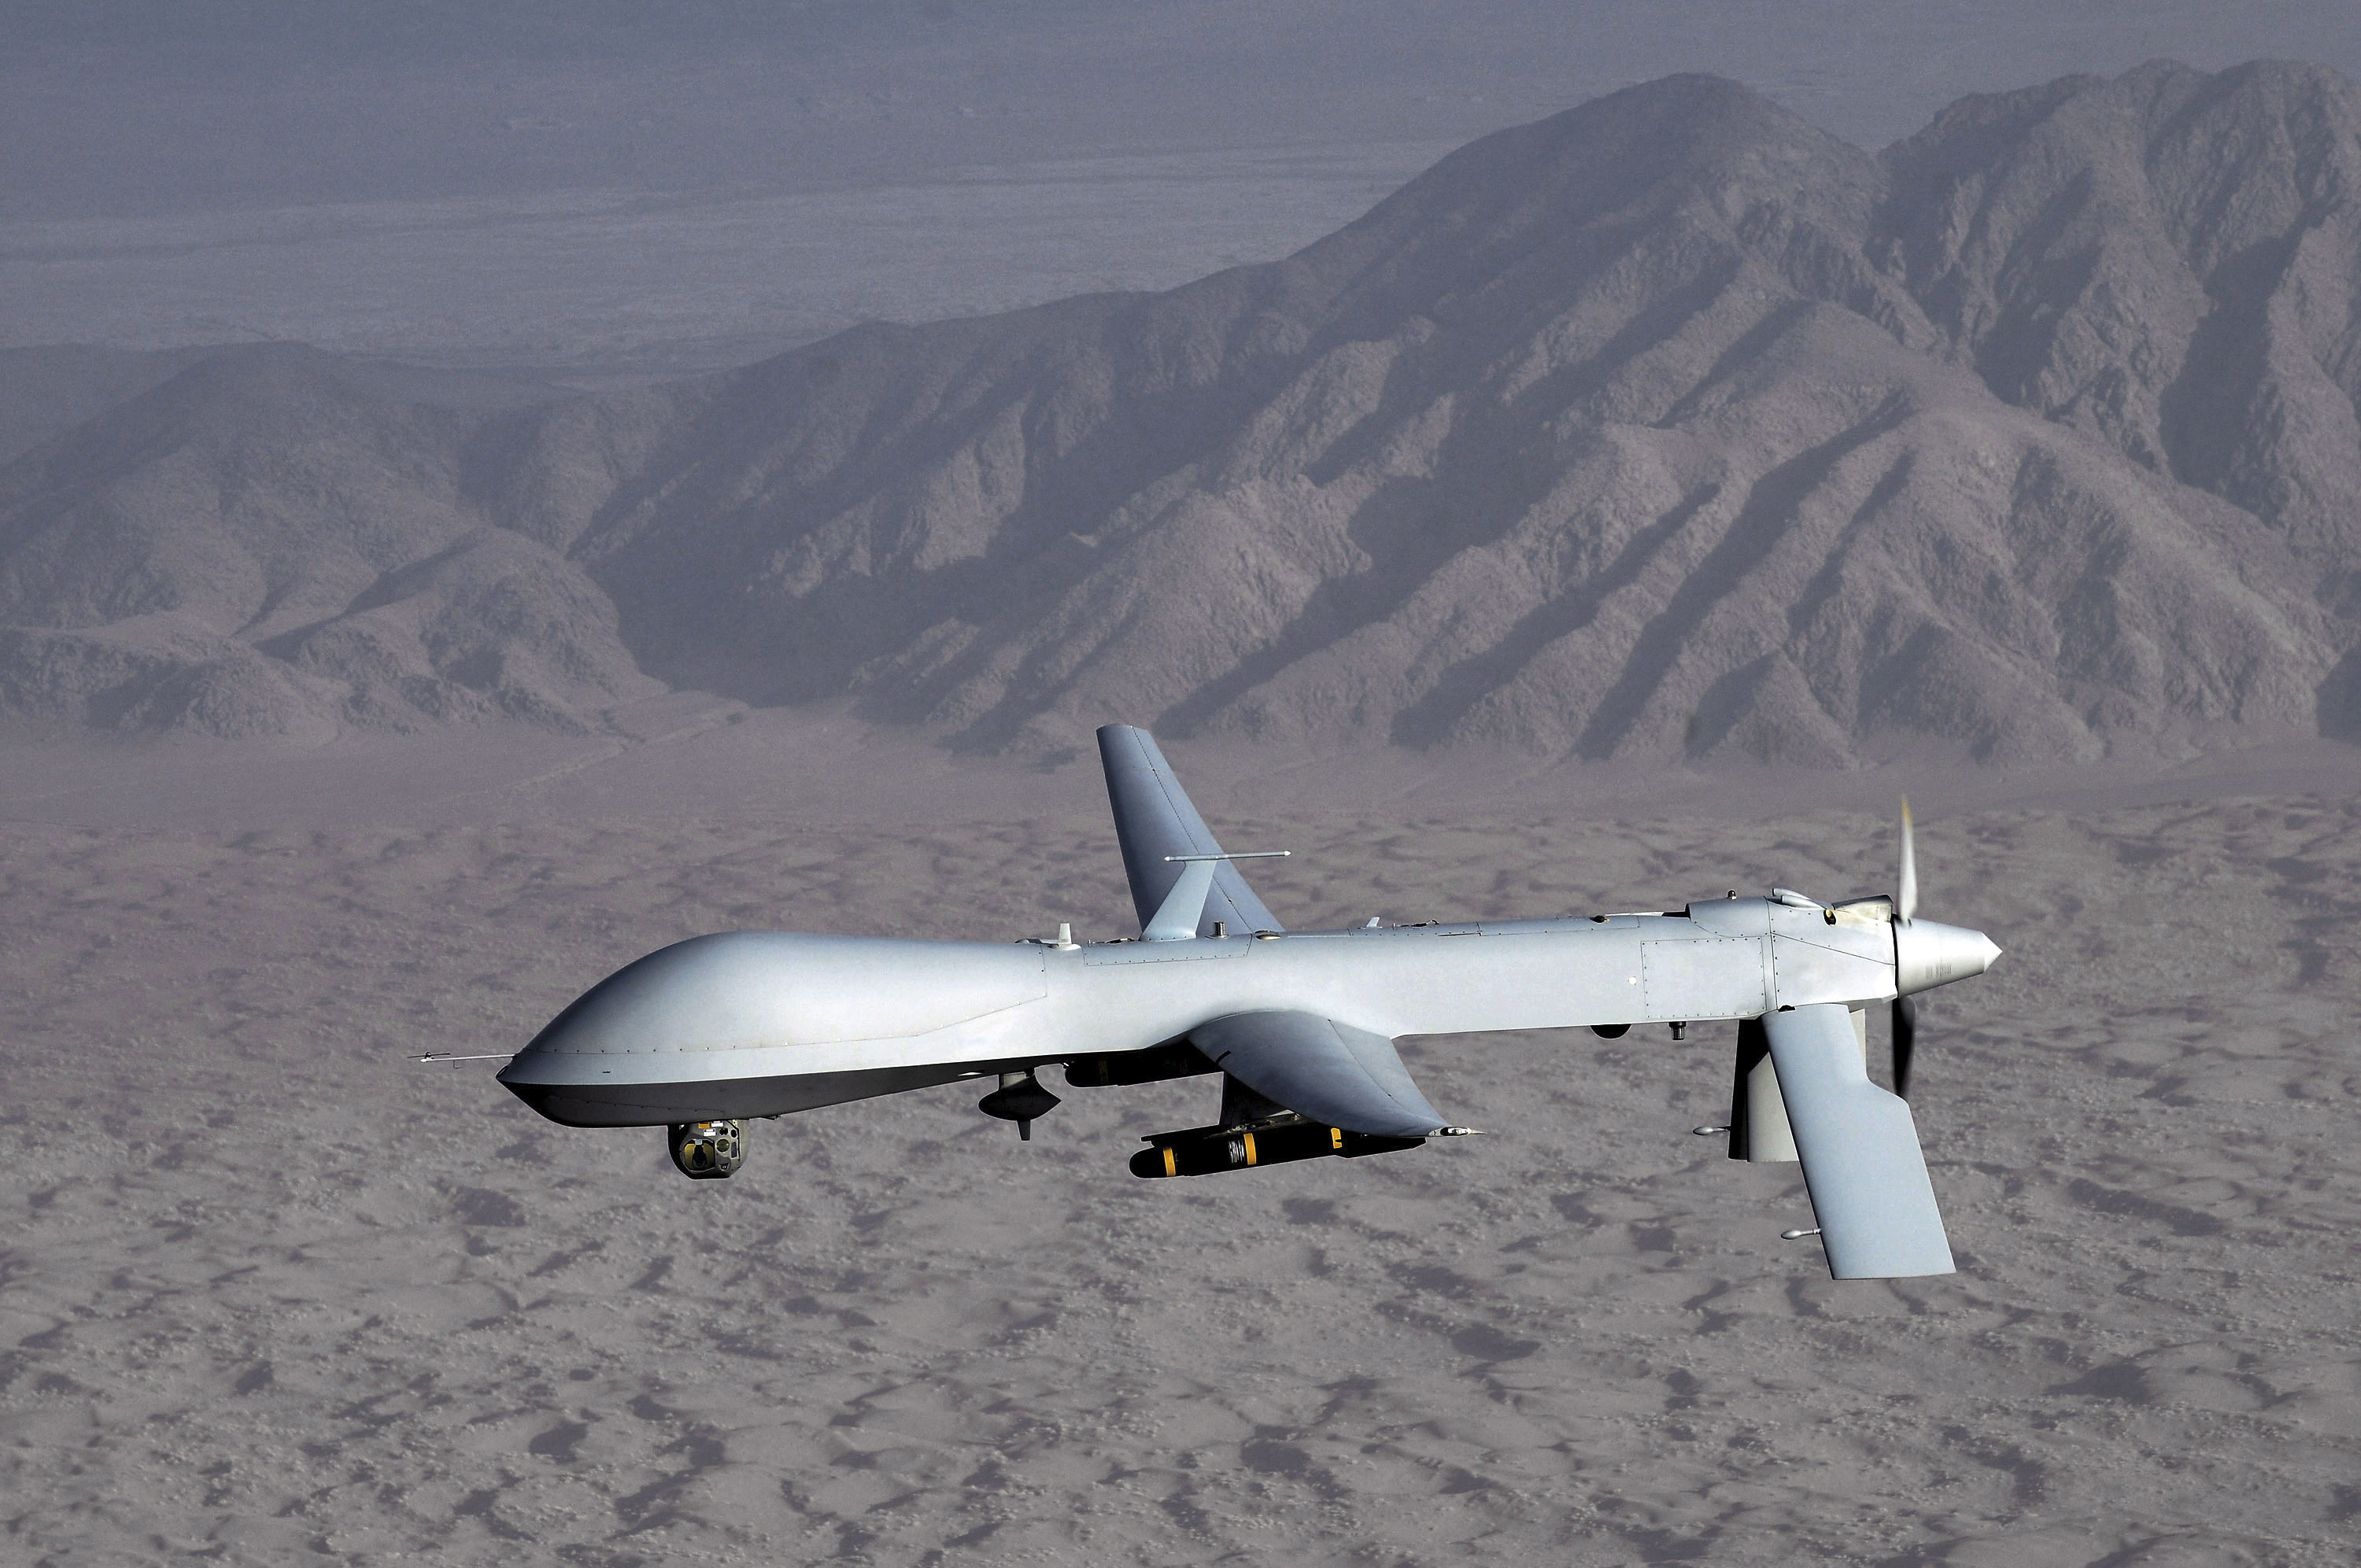 Somalia Drone Strikes Are a Potent Weapon, but Not the Game Changer